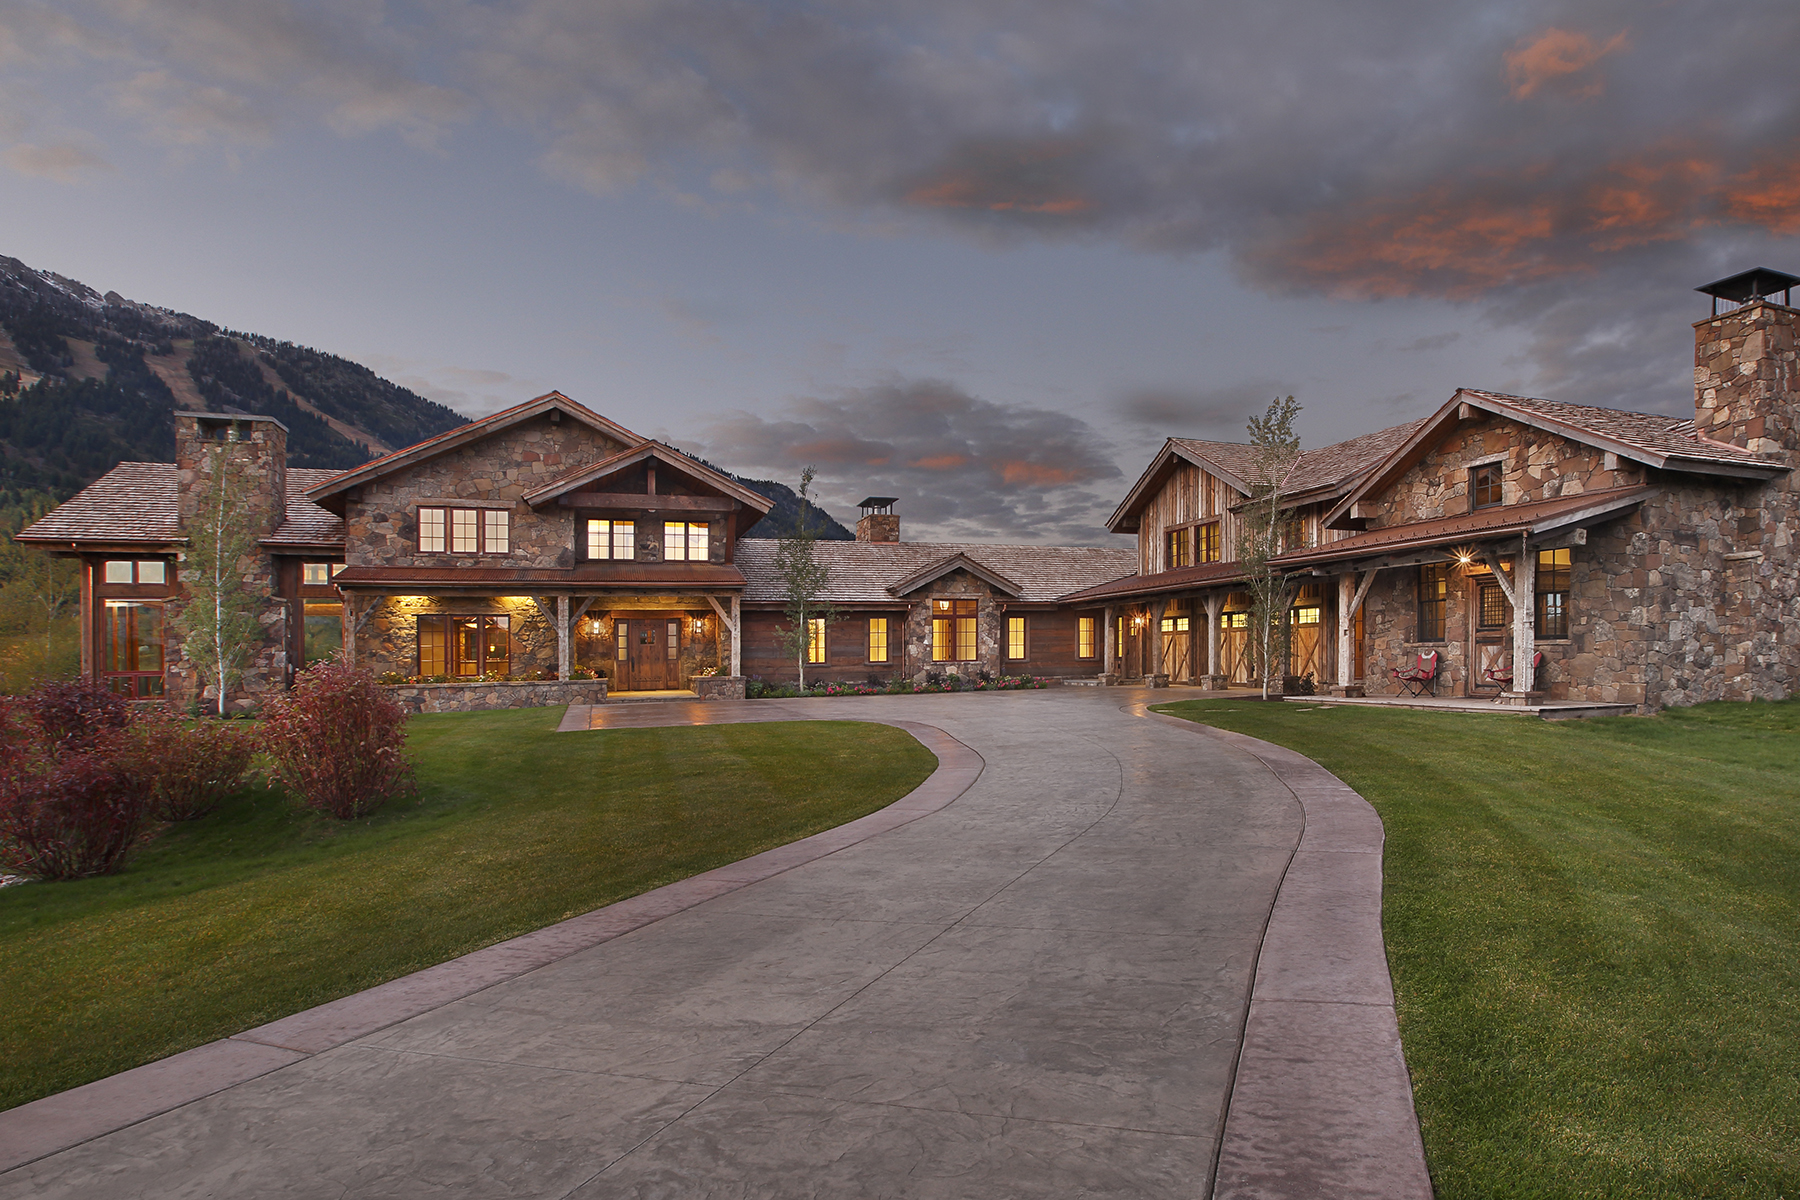 Single Family Home for Sale at Shooting Star New Construction 7165 Jensen Canyon Road Teton Village, Wyoming 83025 United States